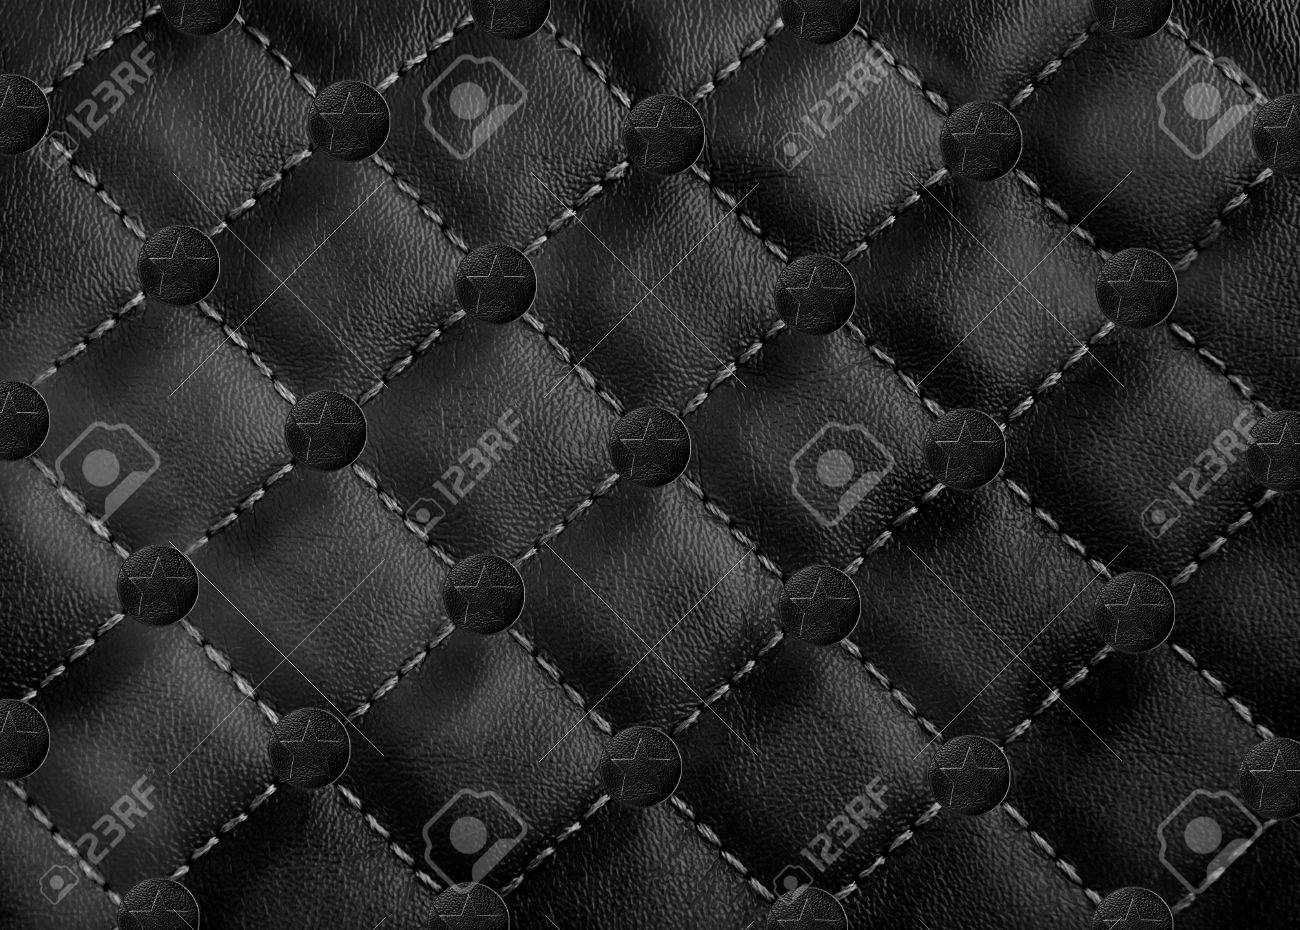 star in circle leather background Stock Photo - 12003363